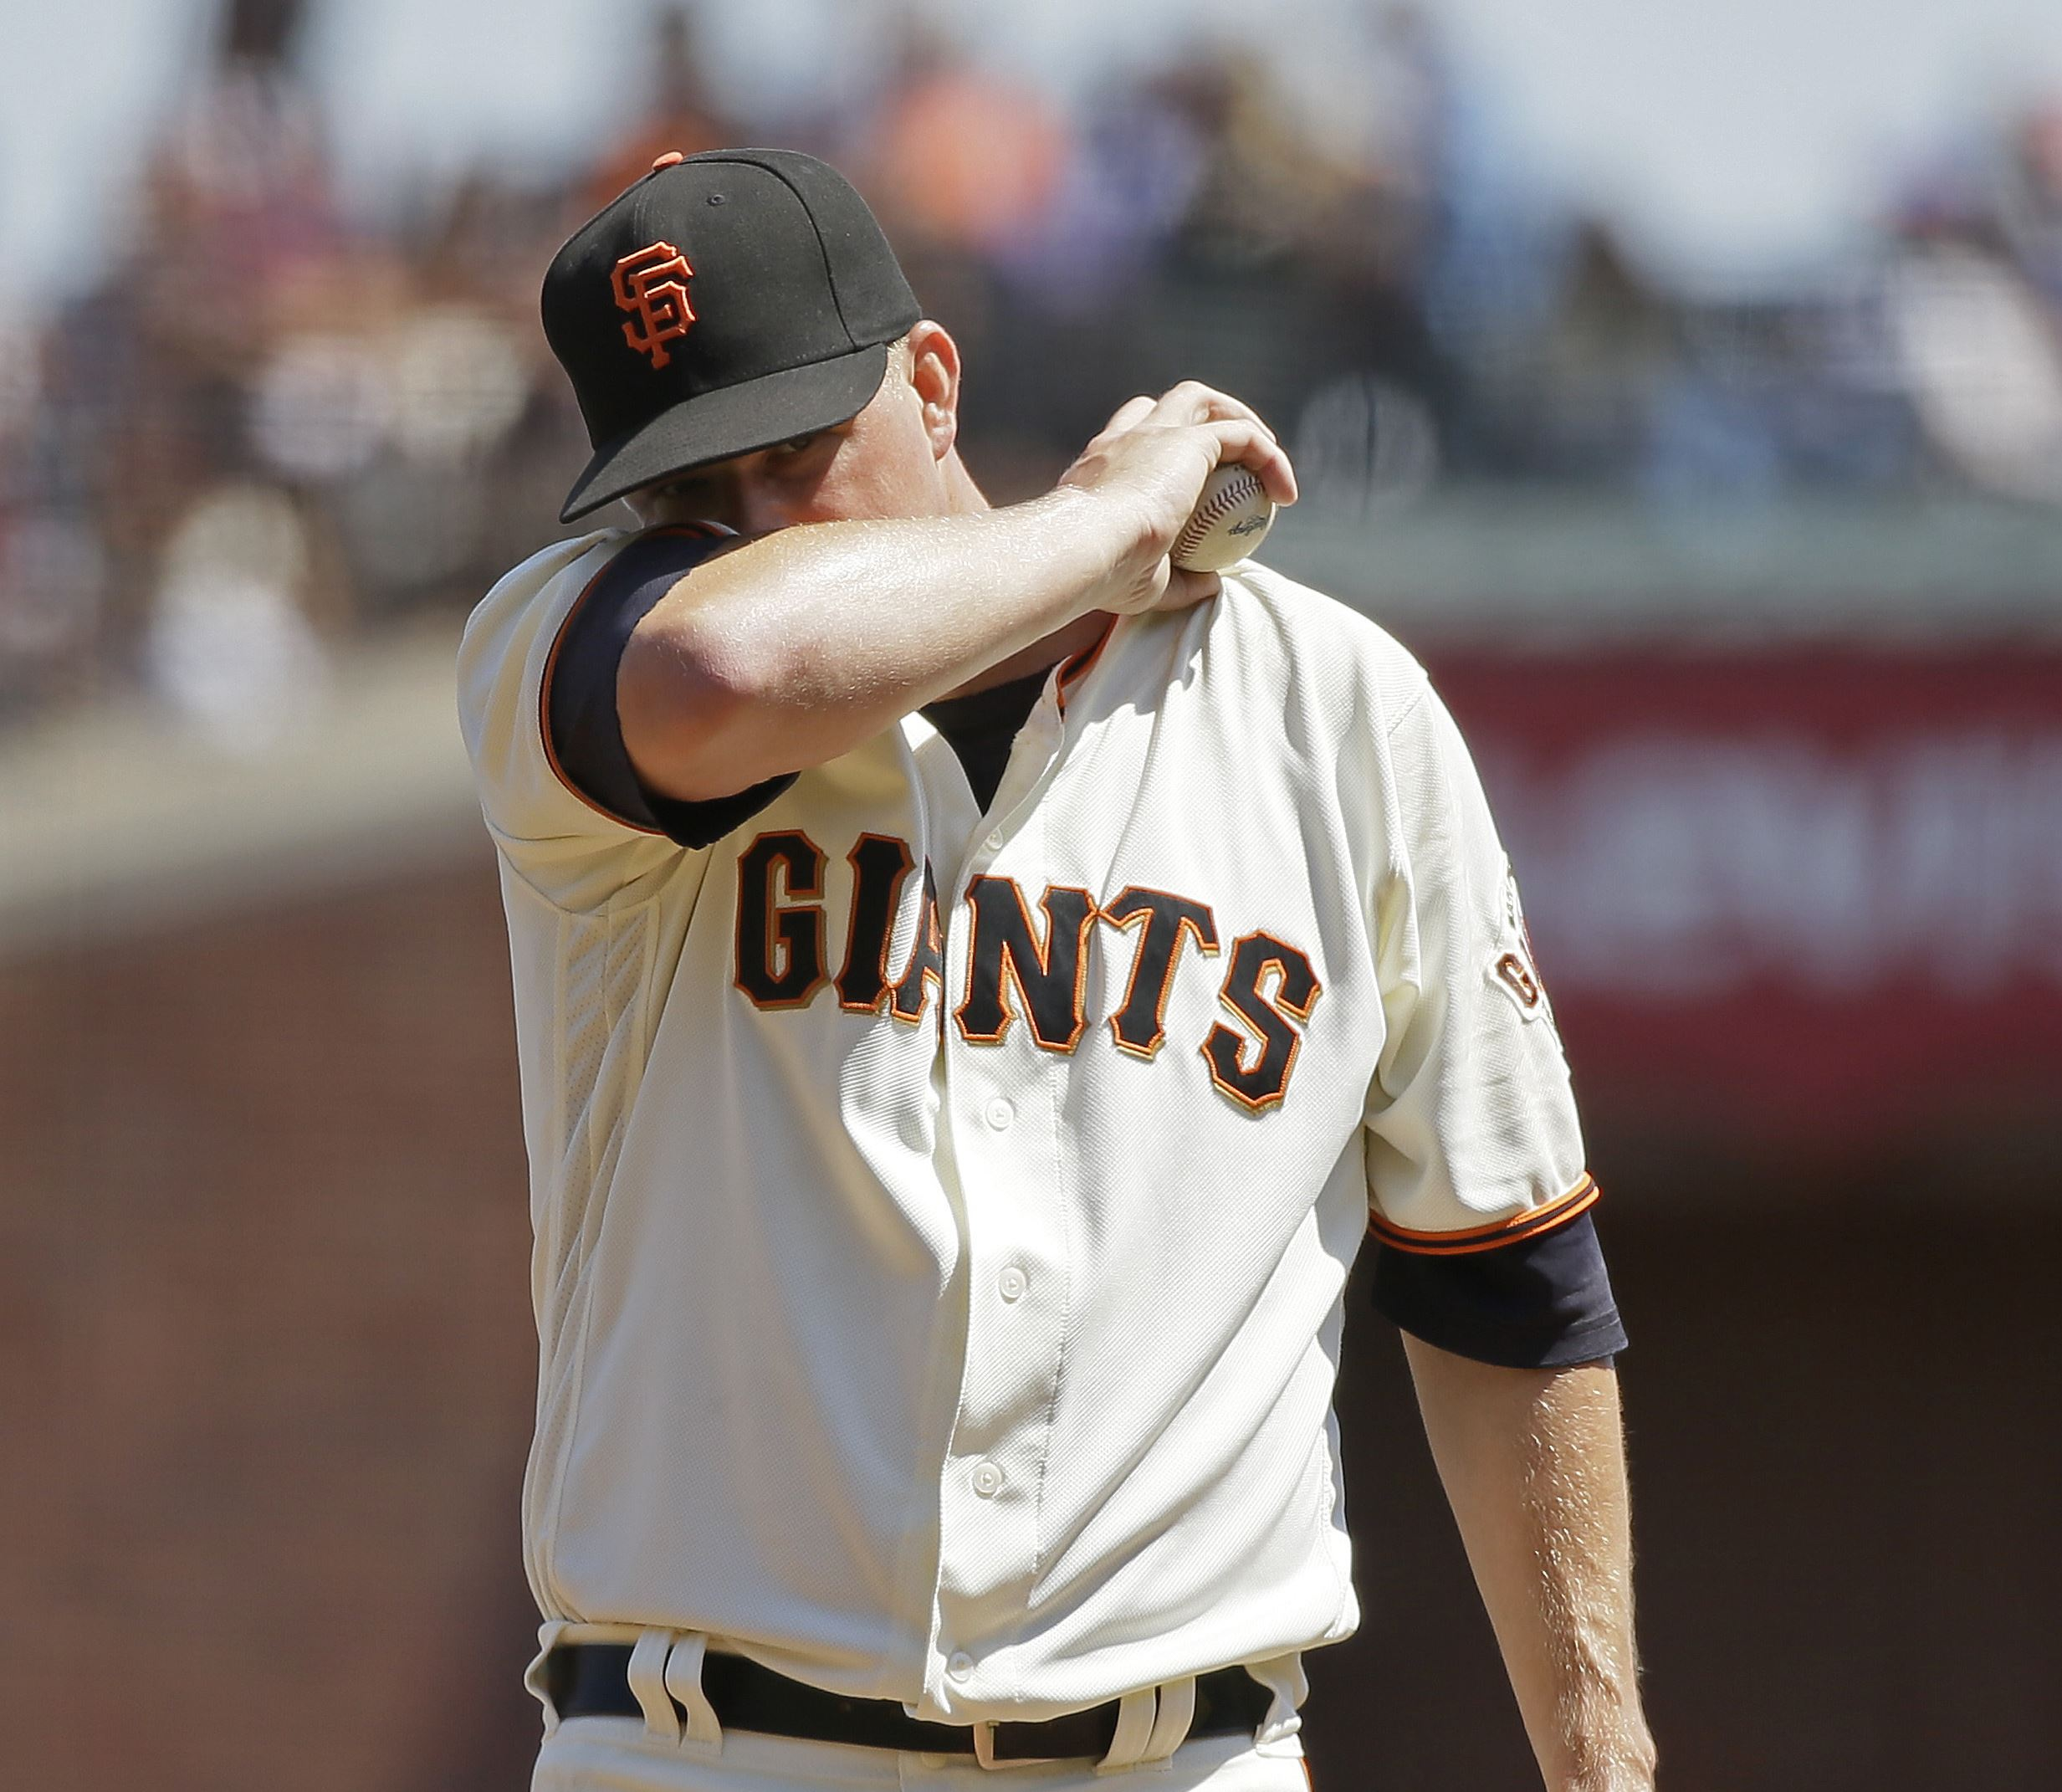 McCutchen's 17th home run caps six-run fifth as Pirates complete sweep of Giants